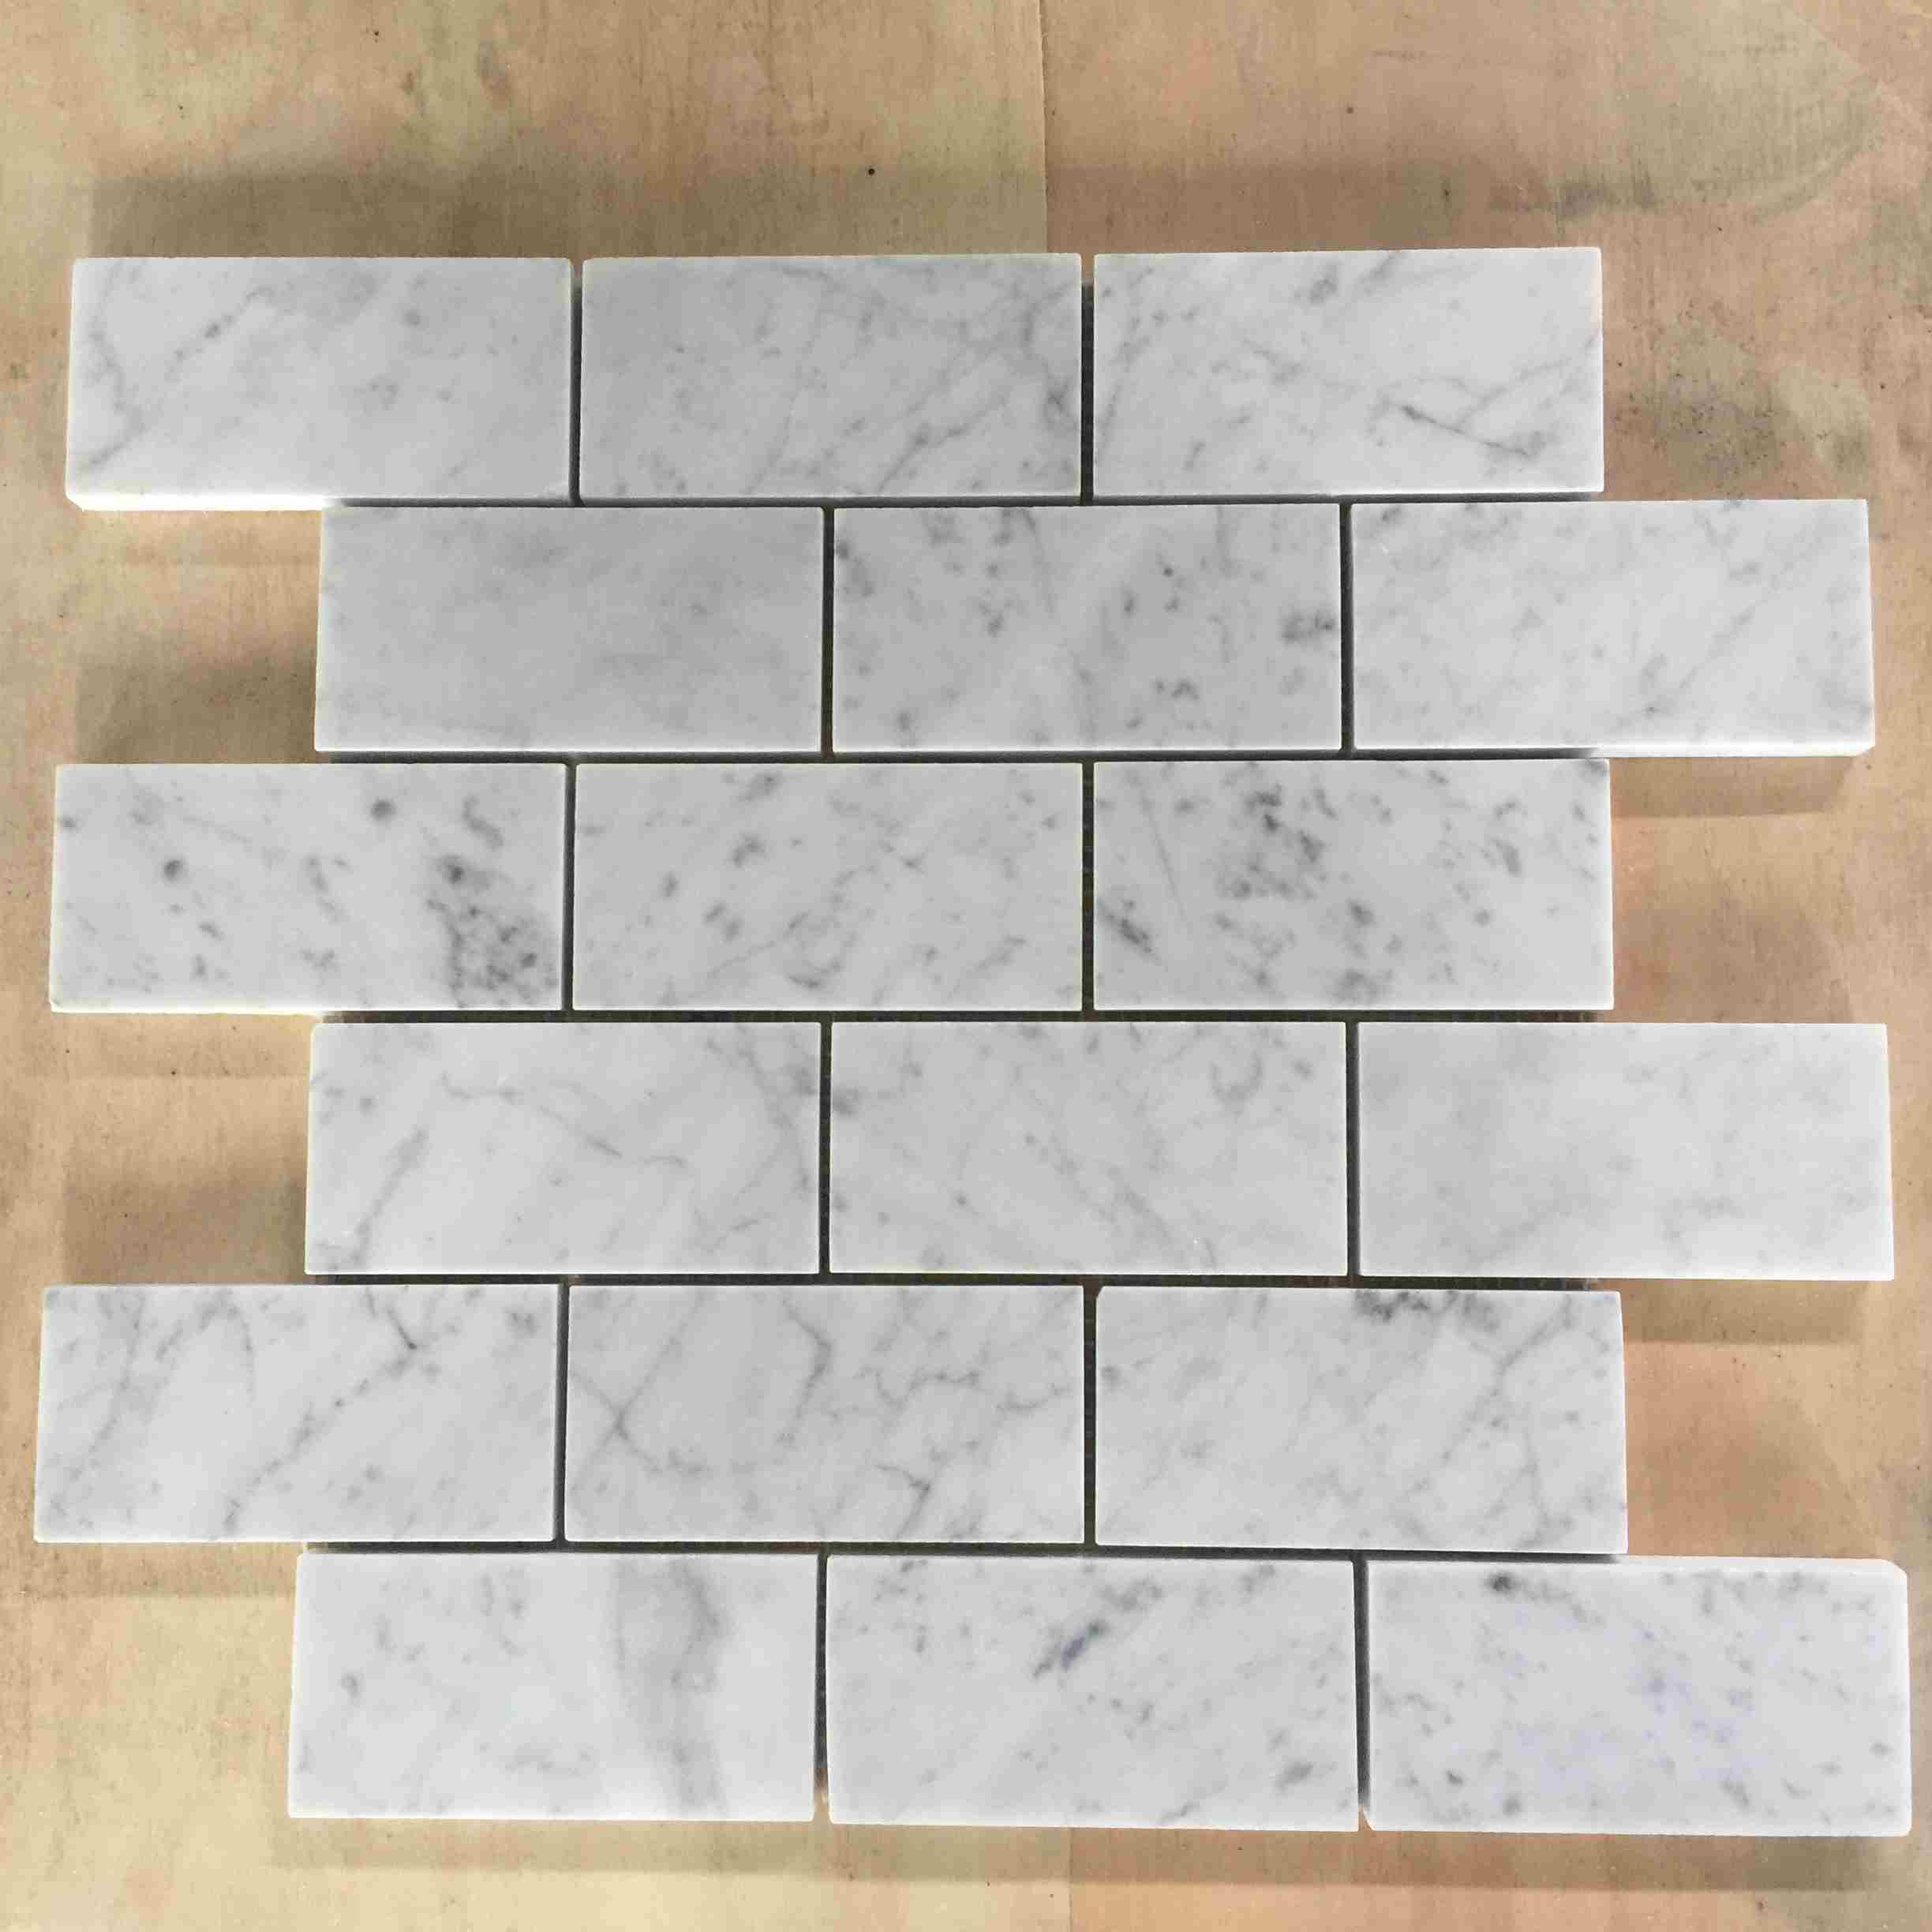 silver mosaic,mosaic wall,fiberglass mesh for mosaic,pool tiles swimming pool mosaic,pink marble mosaic,self adhesive mosaic,backsplash tiles mosaic